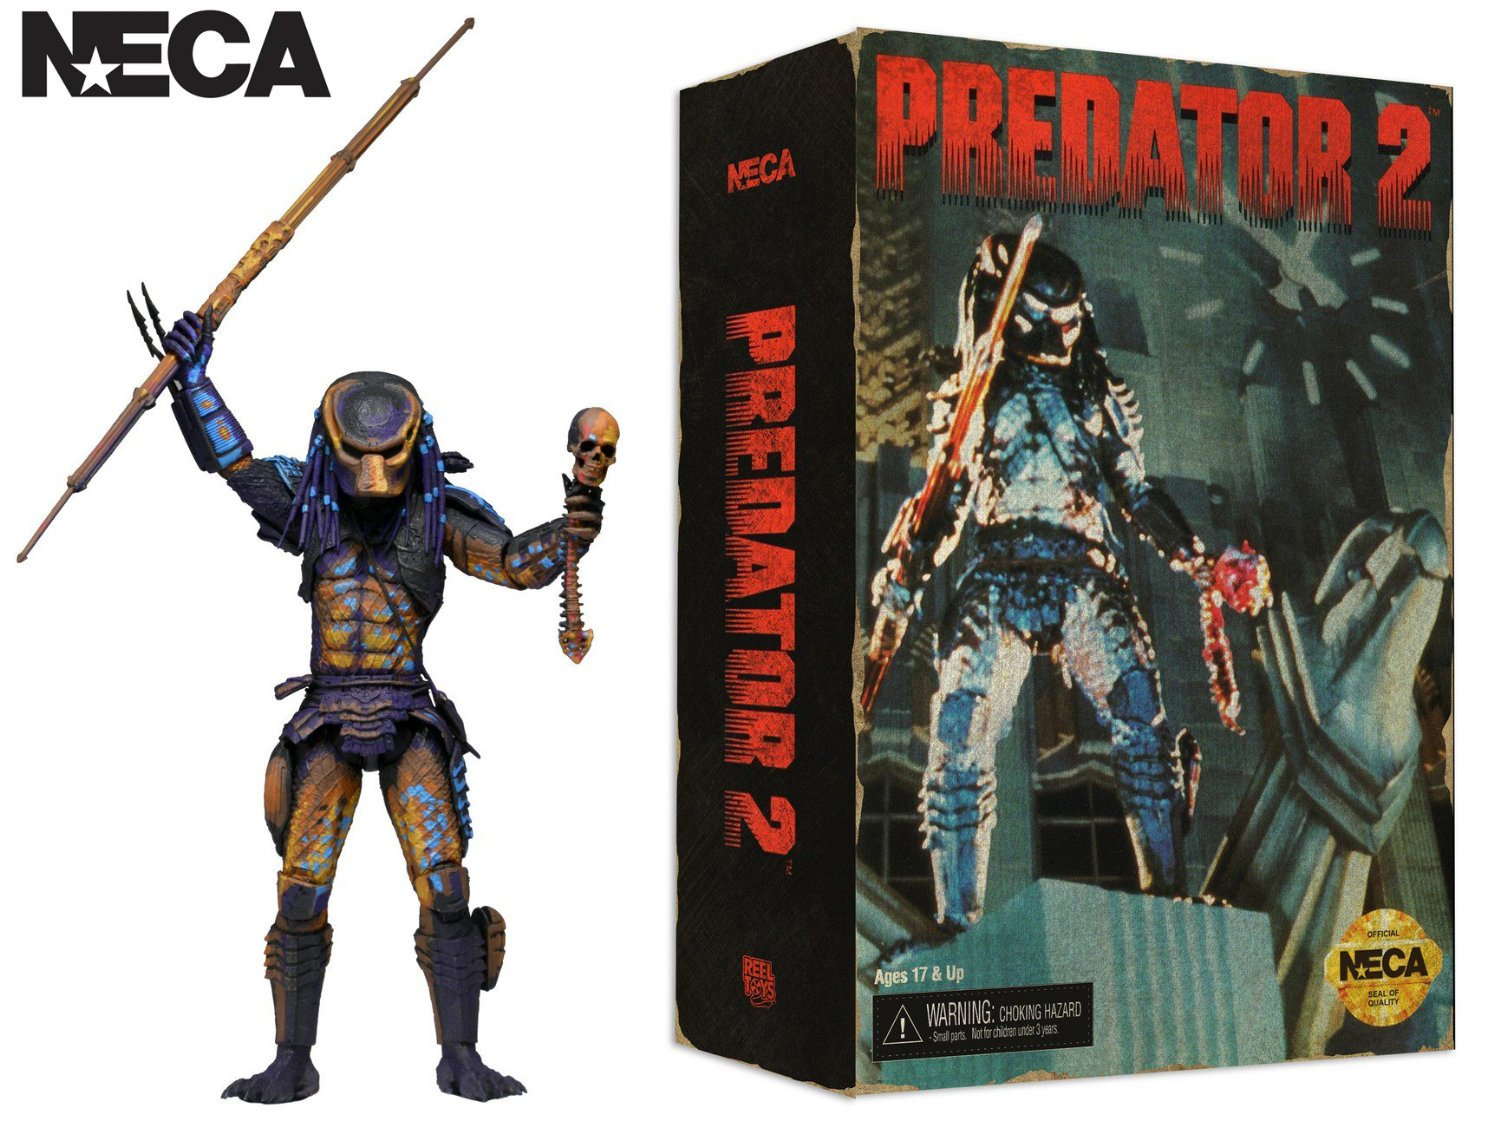 NECA Predators 2 PVC Action Figure Collectible Model Toy Classic Toys 7 18cm MVFG316 neca predator 2 pvc action figures toys collectible model dolls classic toy great gift 718cm with box free shipping